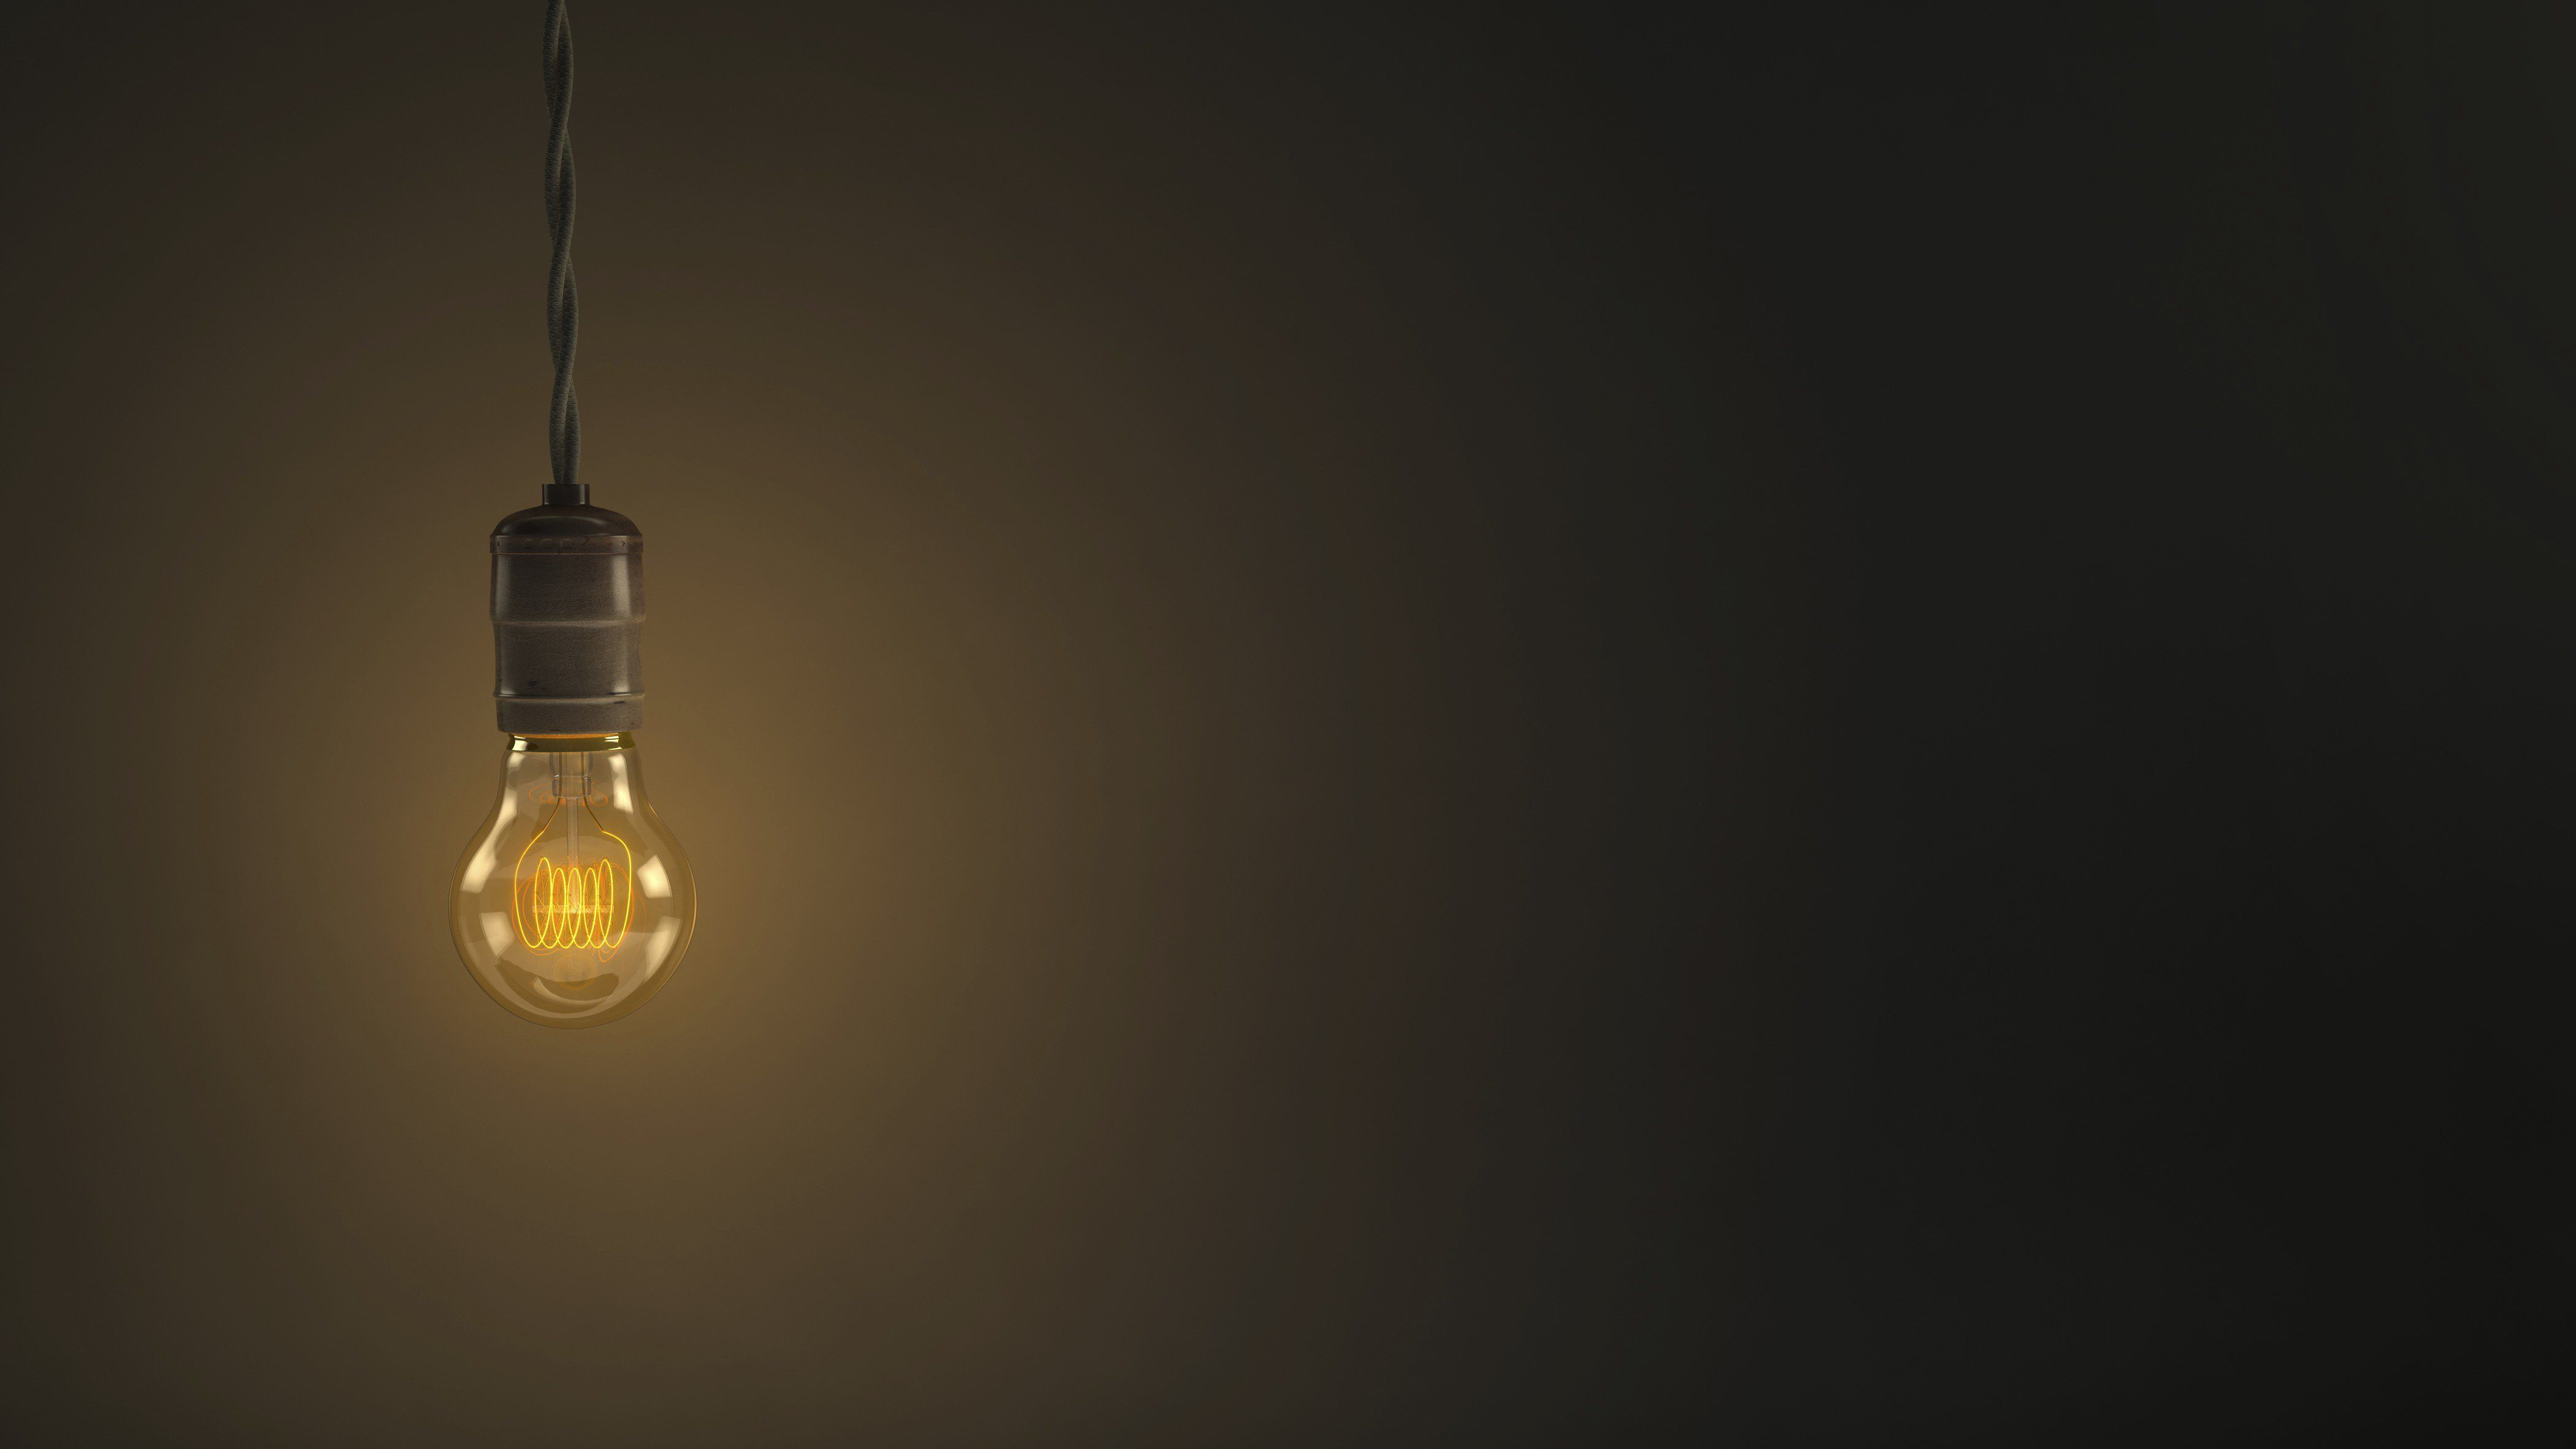 170 HD and QHD wallpapers of beautiful lights and light bulbs 4200x2362